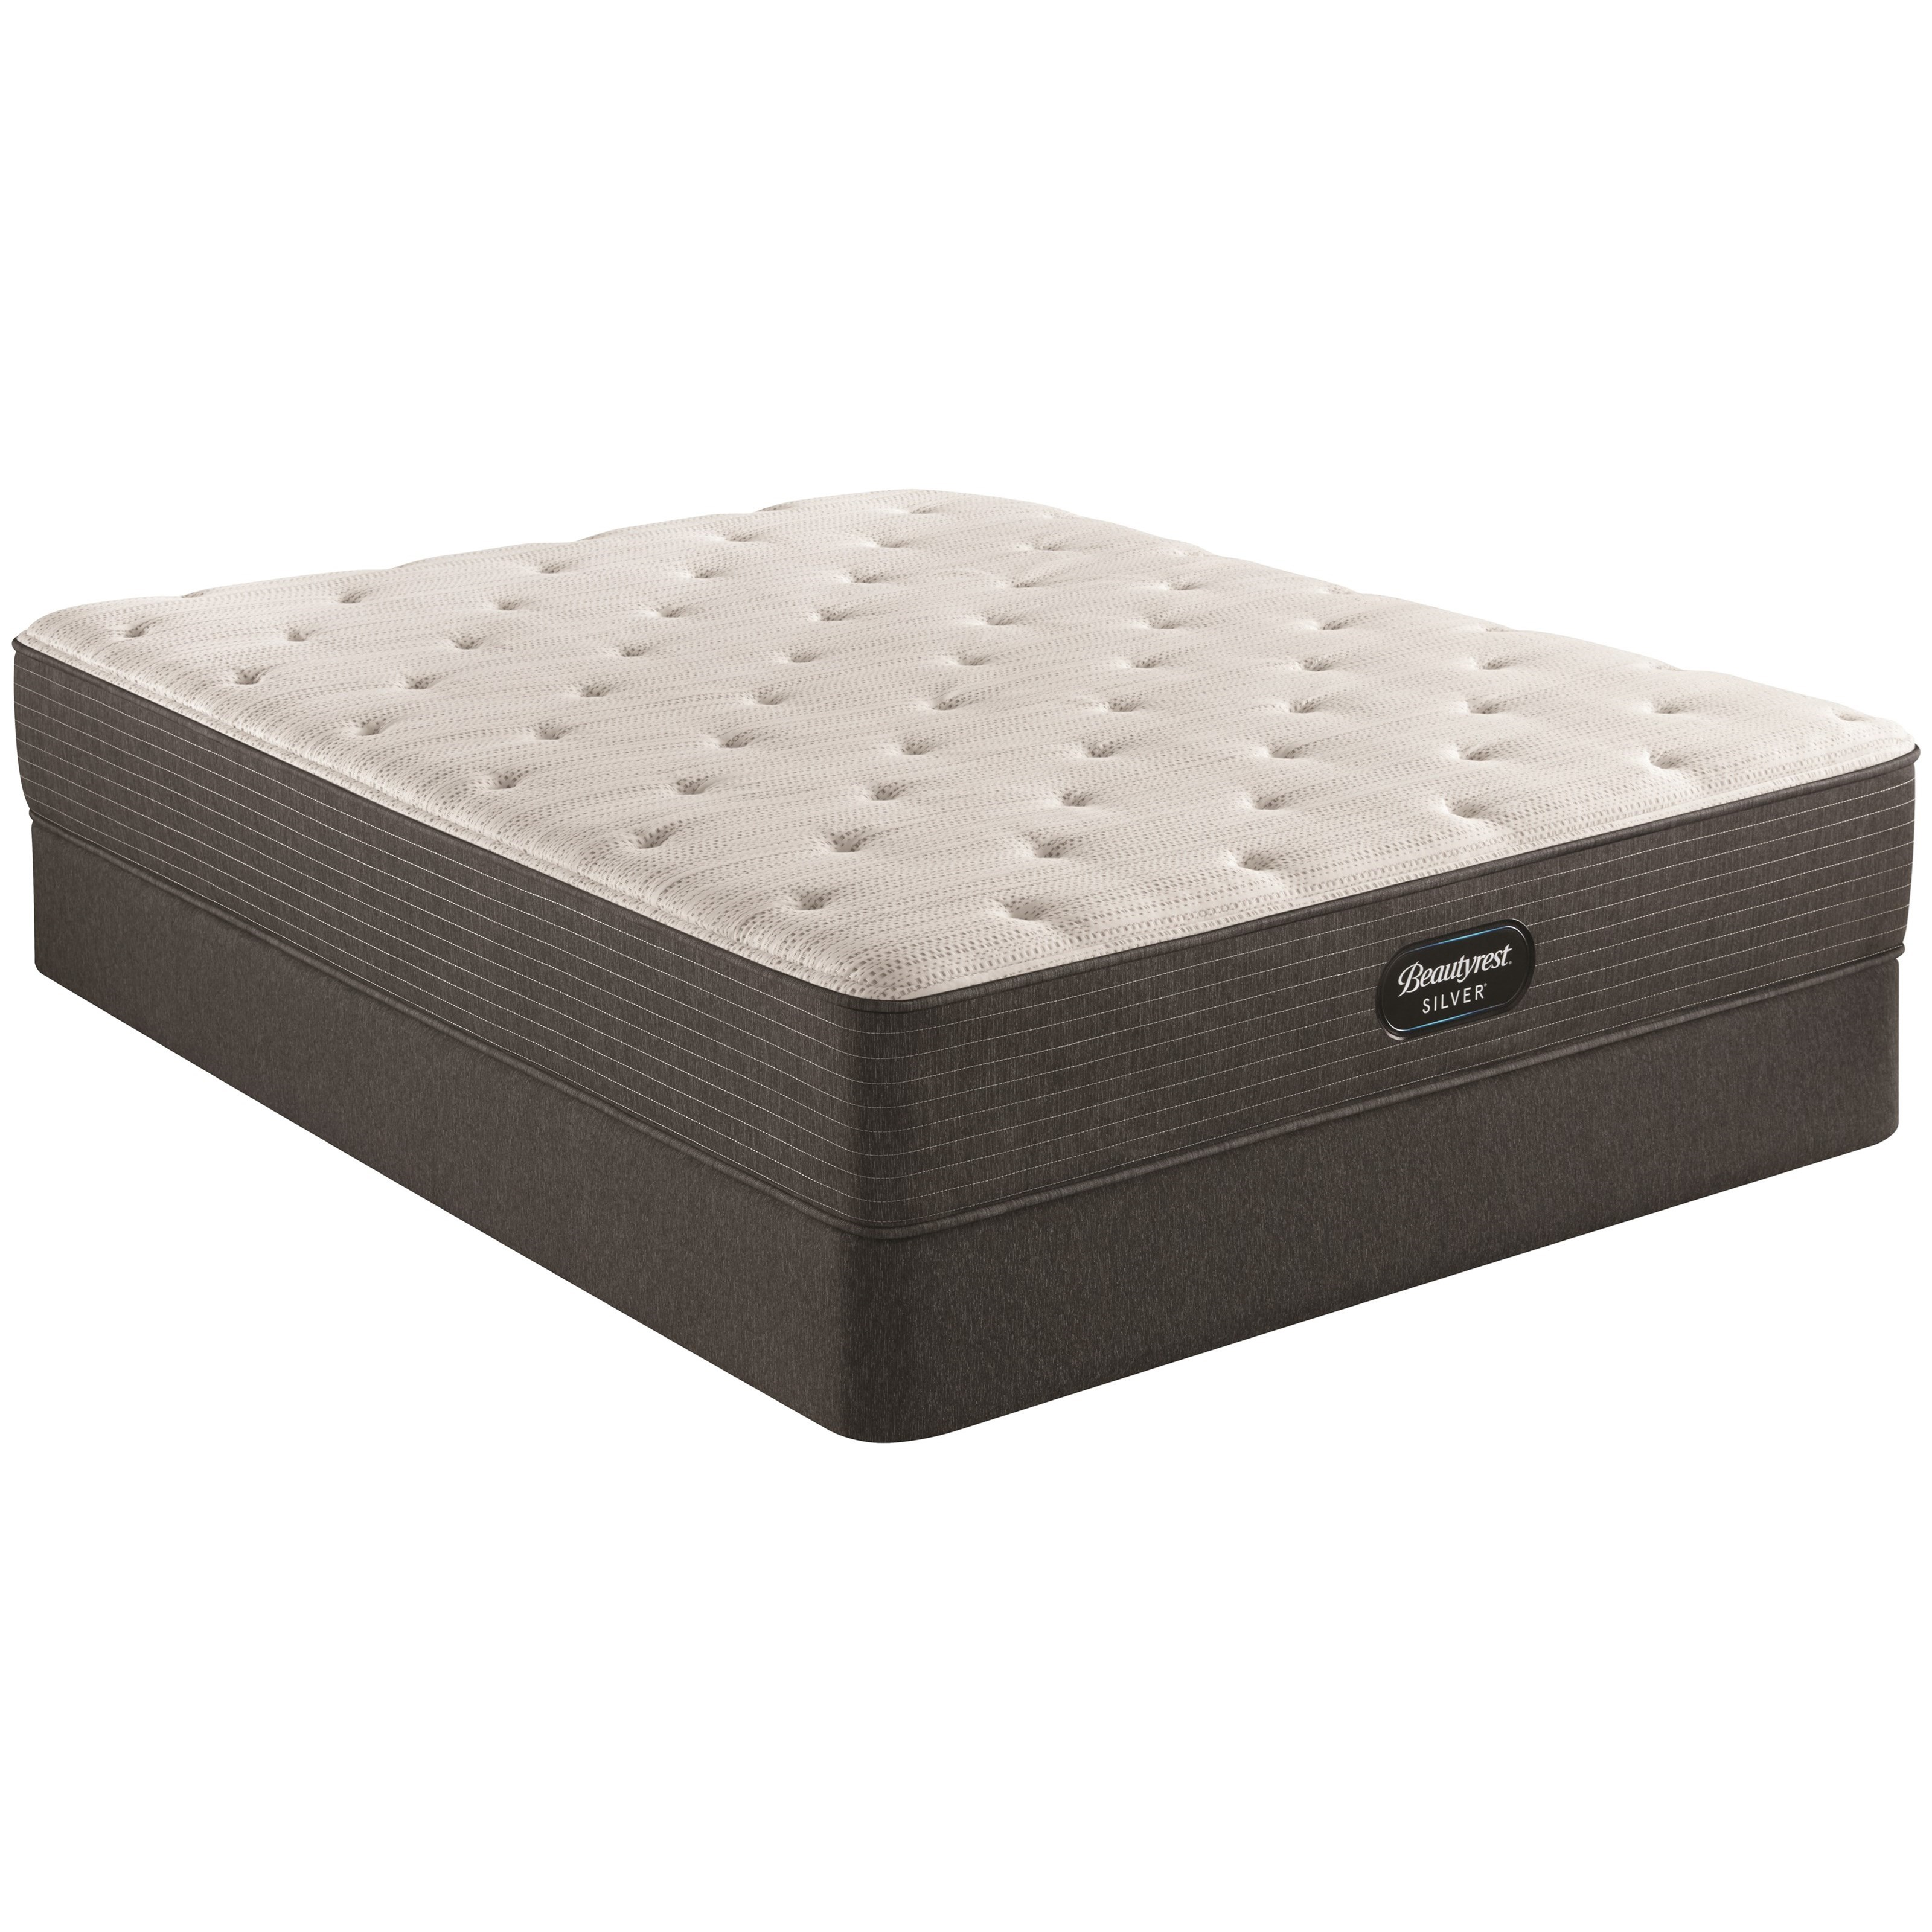 "Twin XL 11 3/4"" Pocketed Coil Mattress Set"